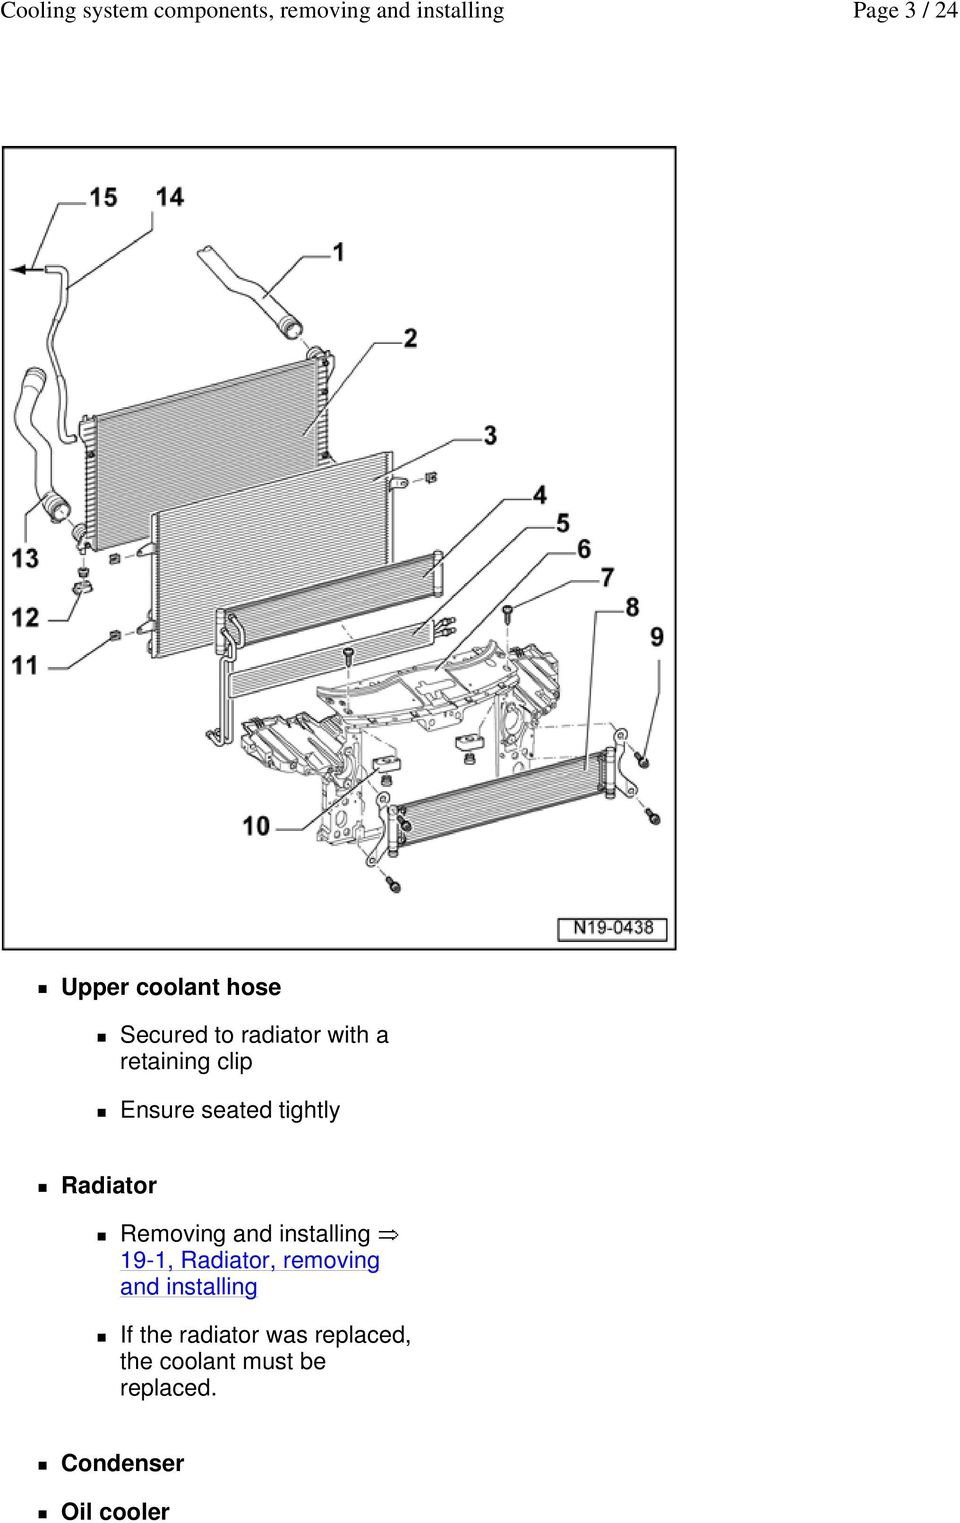 medium resolution of installing 19 1 radiator removing and installing if the